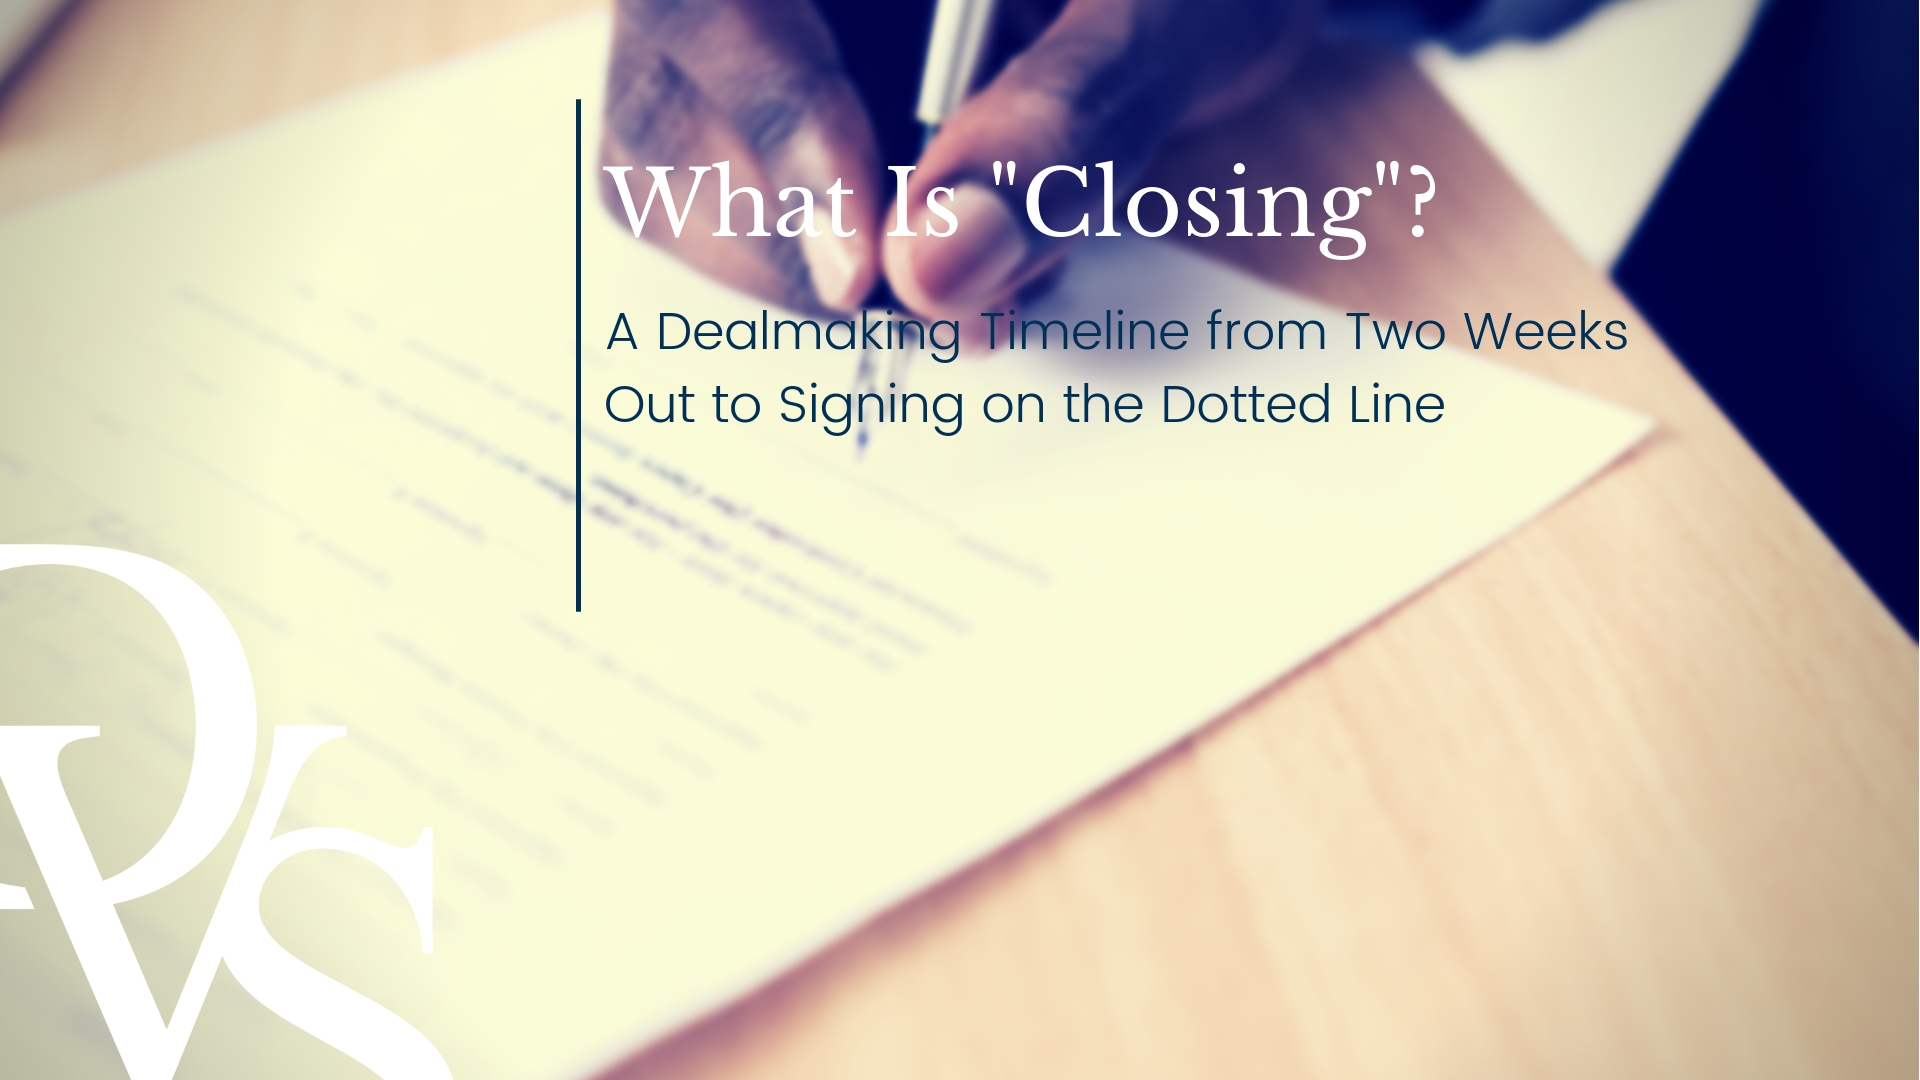 What Is Closing?